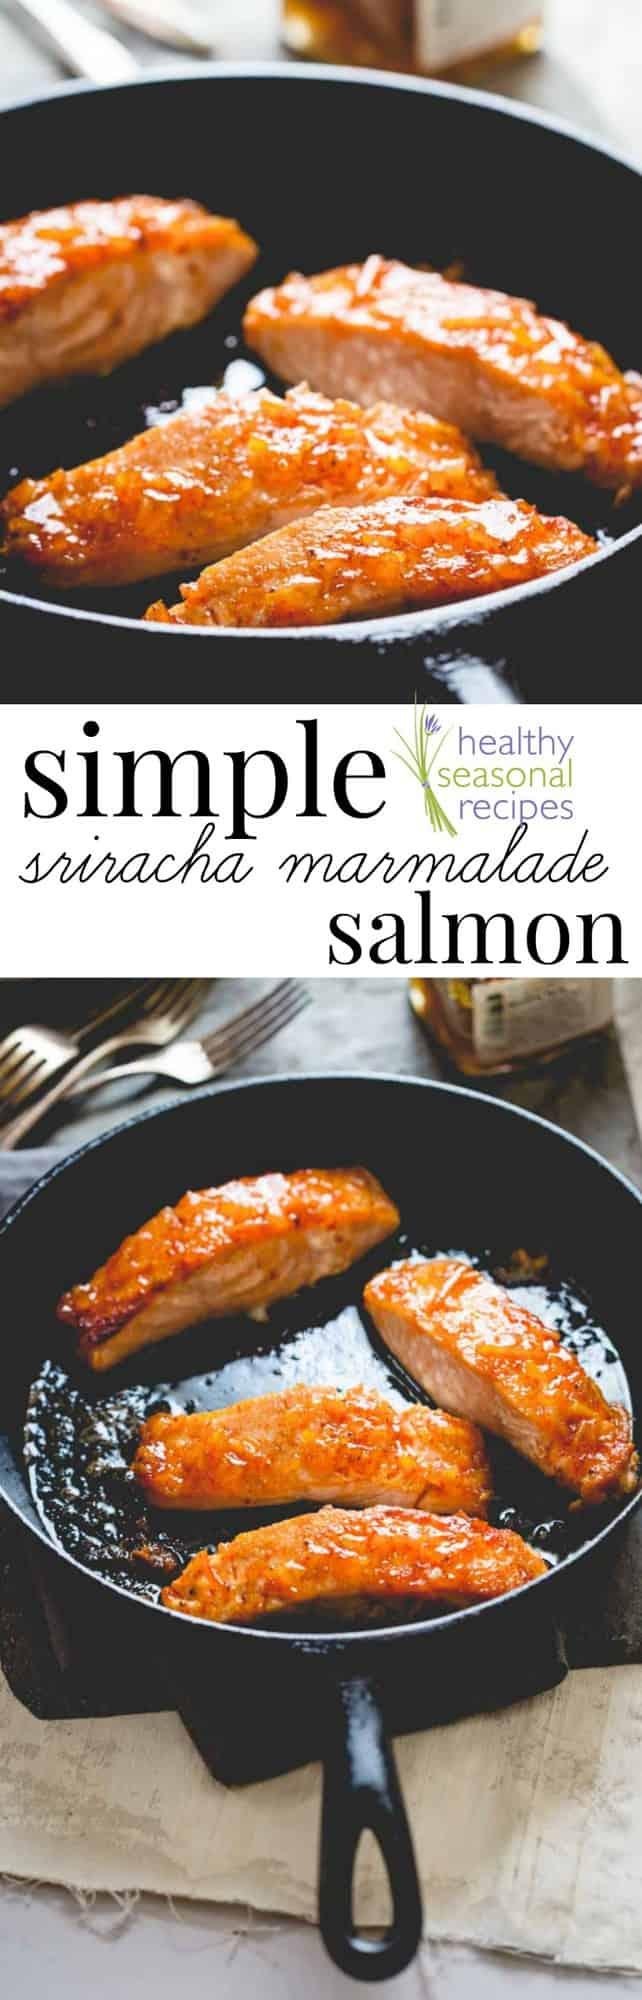 This Simple Sriracha Marmalade Glazed Salmon by Healthy Seasonal Recipes is a great weeknight entree and ready in under 20 minutes! #salmon #healthy #glutenfree #fish #seafood